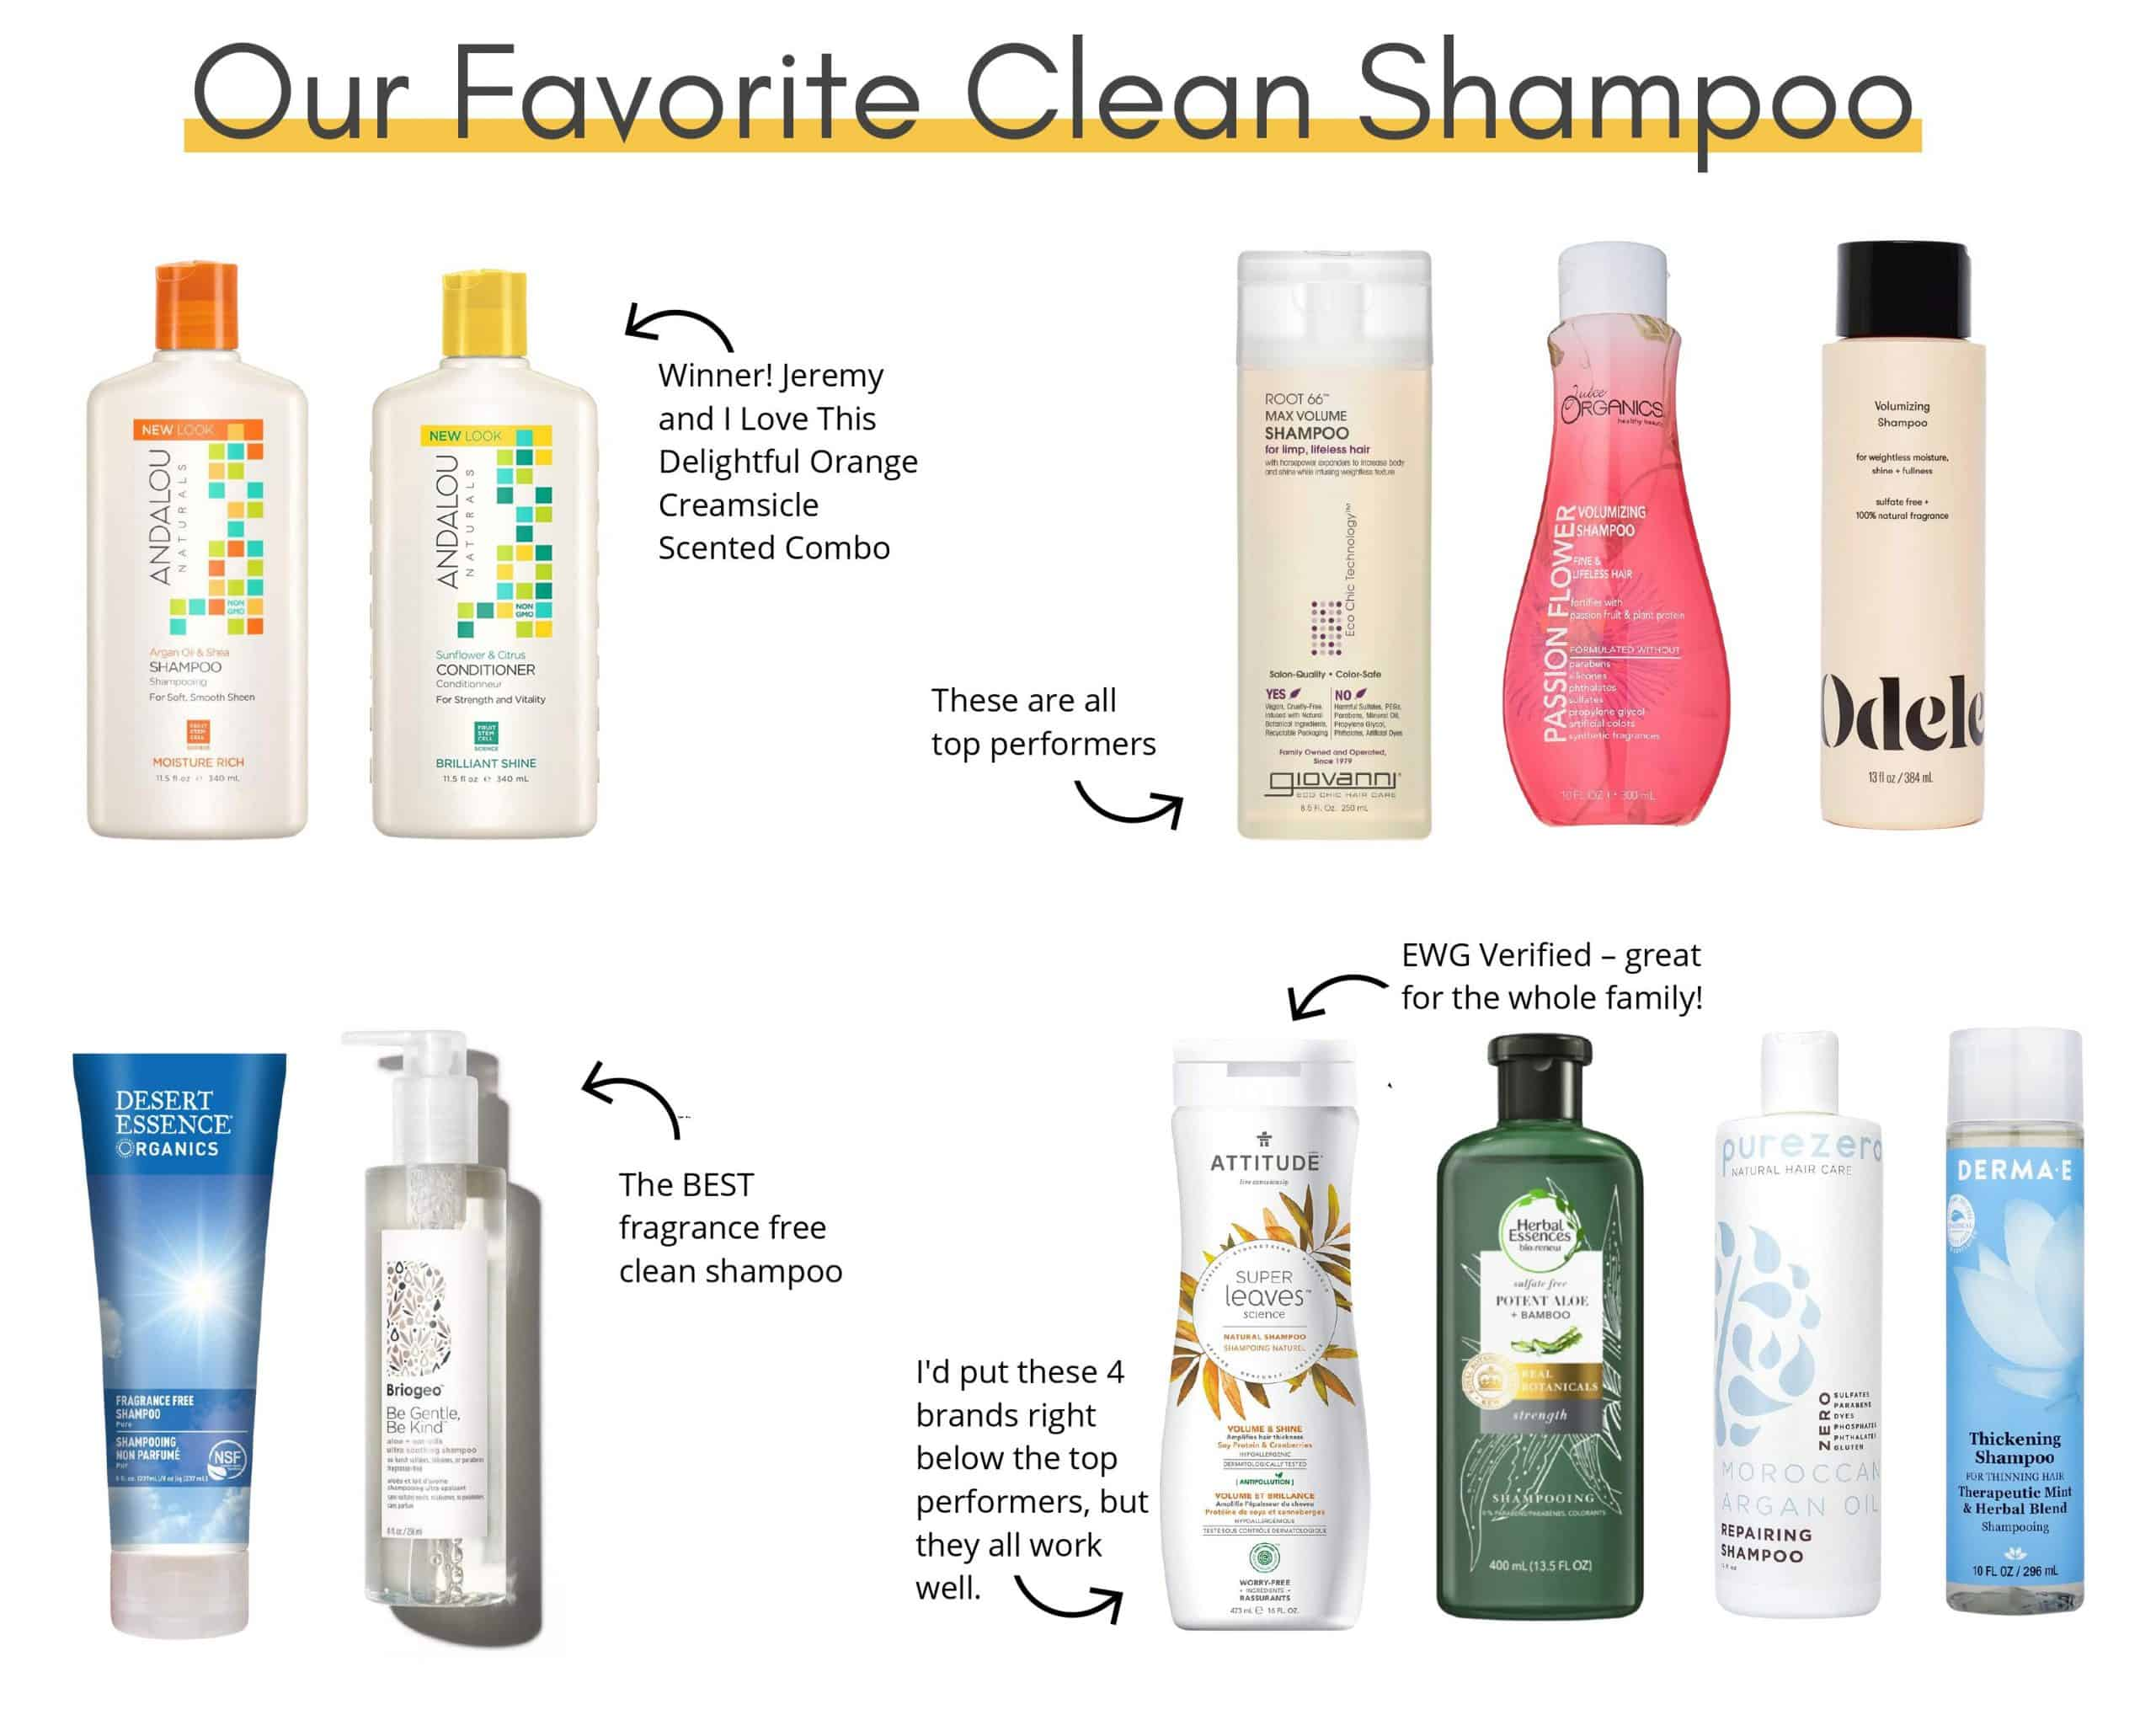 Our favorite clean shampoo brands